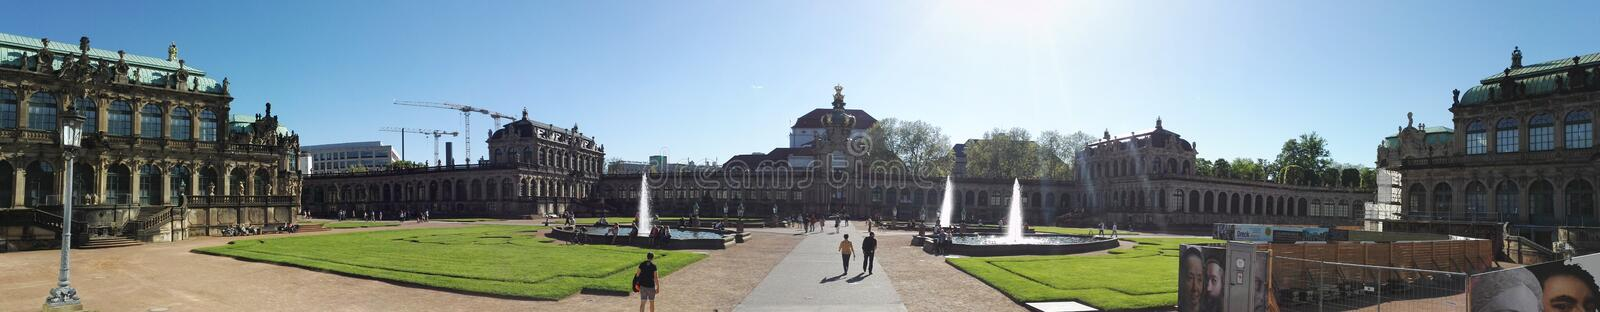 Panoramic picture of Zwinger palace, Dresden, Germany stock images